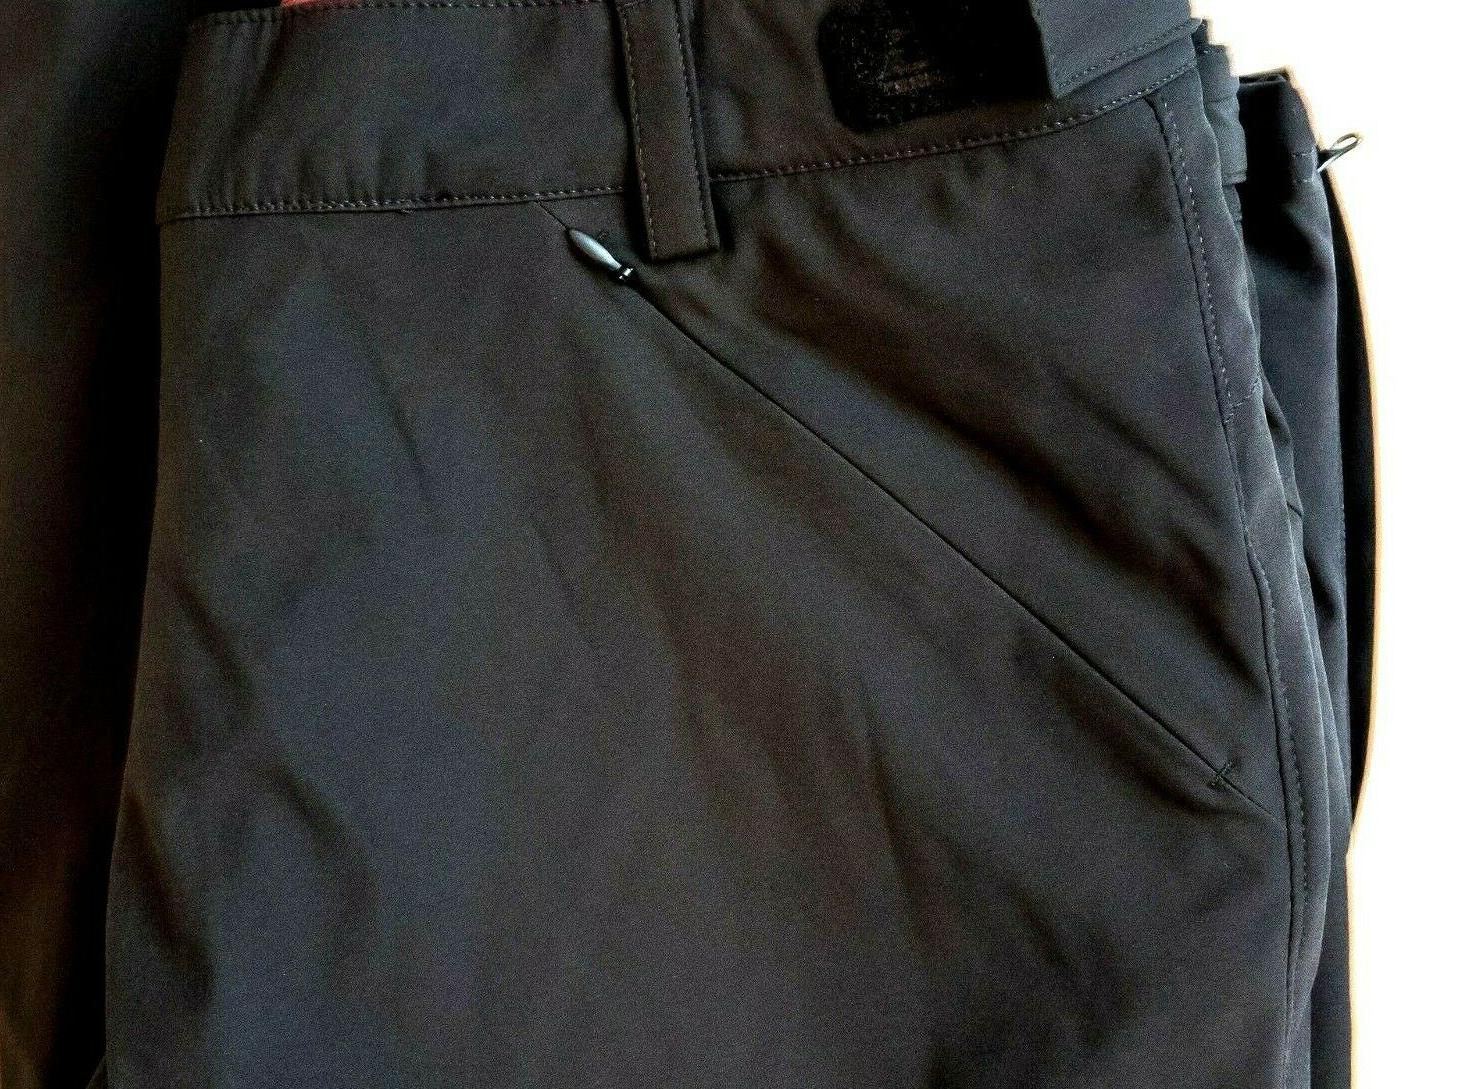 Gerry Size XL Insulated Ski Pants